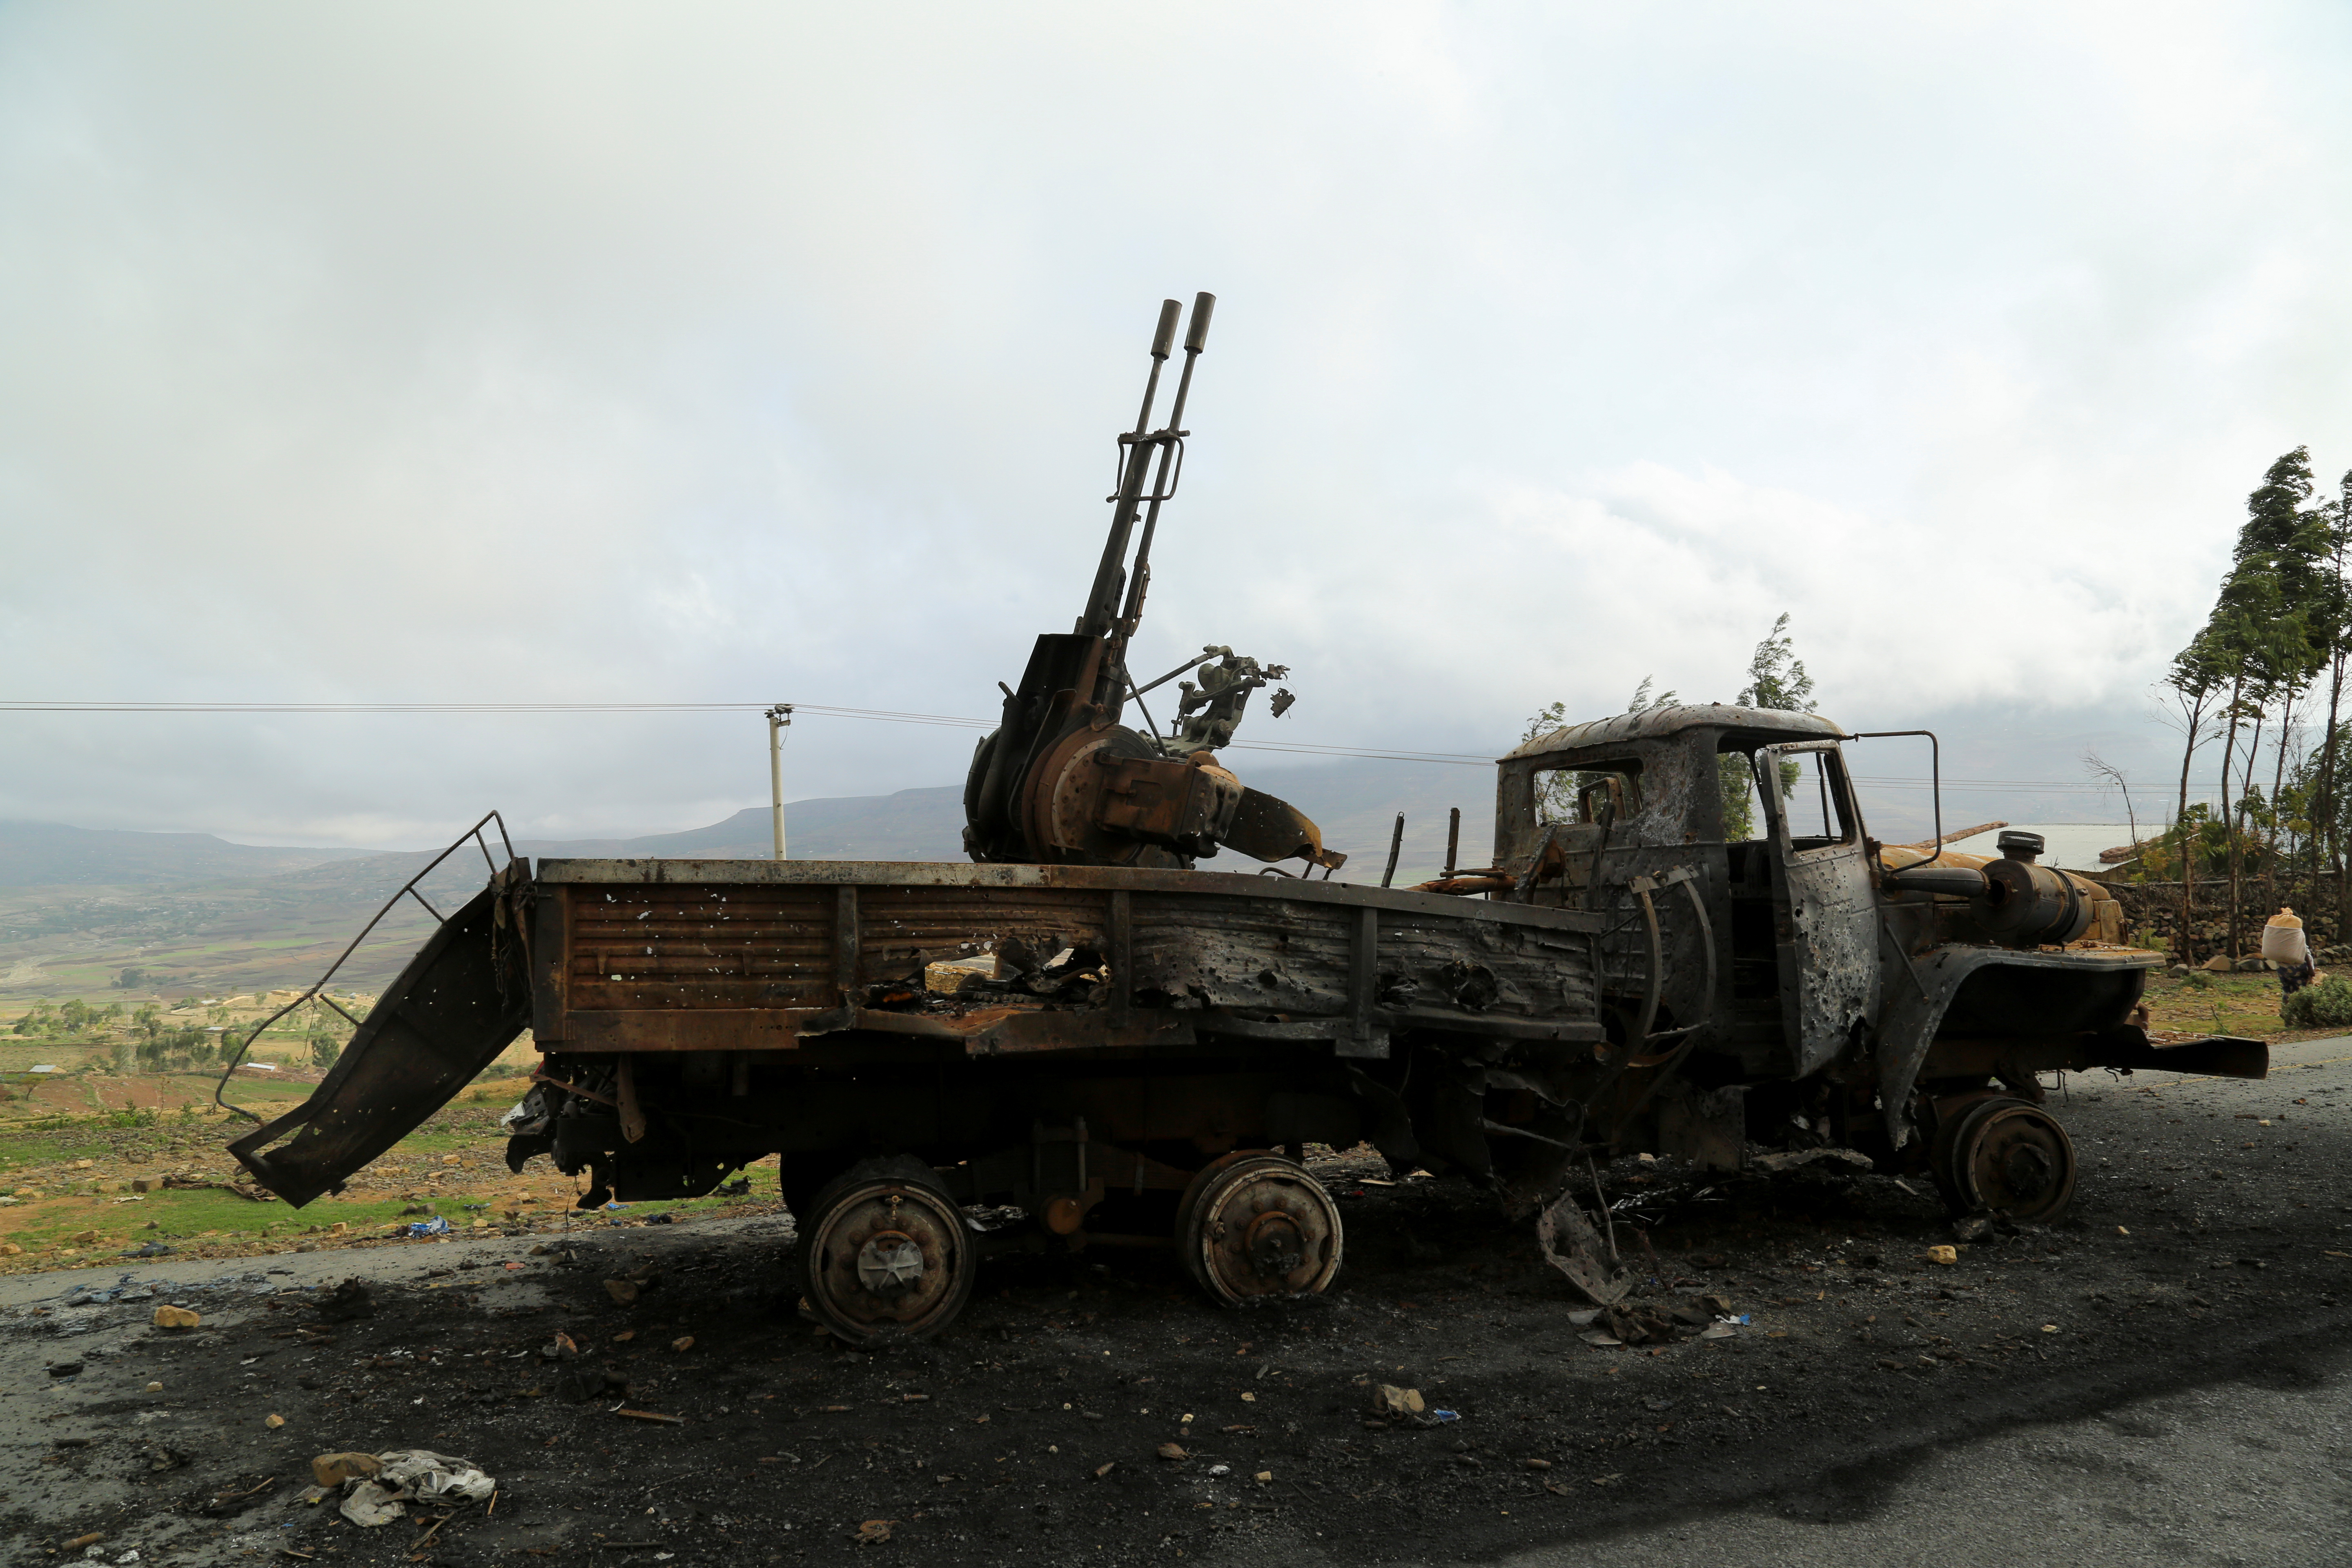 A machine gun mounted in a burnt-out truck on the road to Abiy Addi town in Ethiopia, July 10, 2021. The area saw fierce fighting between Ethiopia's military and Tigrayan forces. REUTERS/Giulia Paravicini